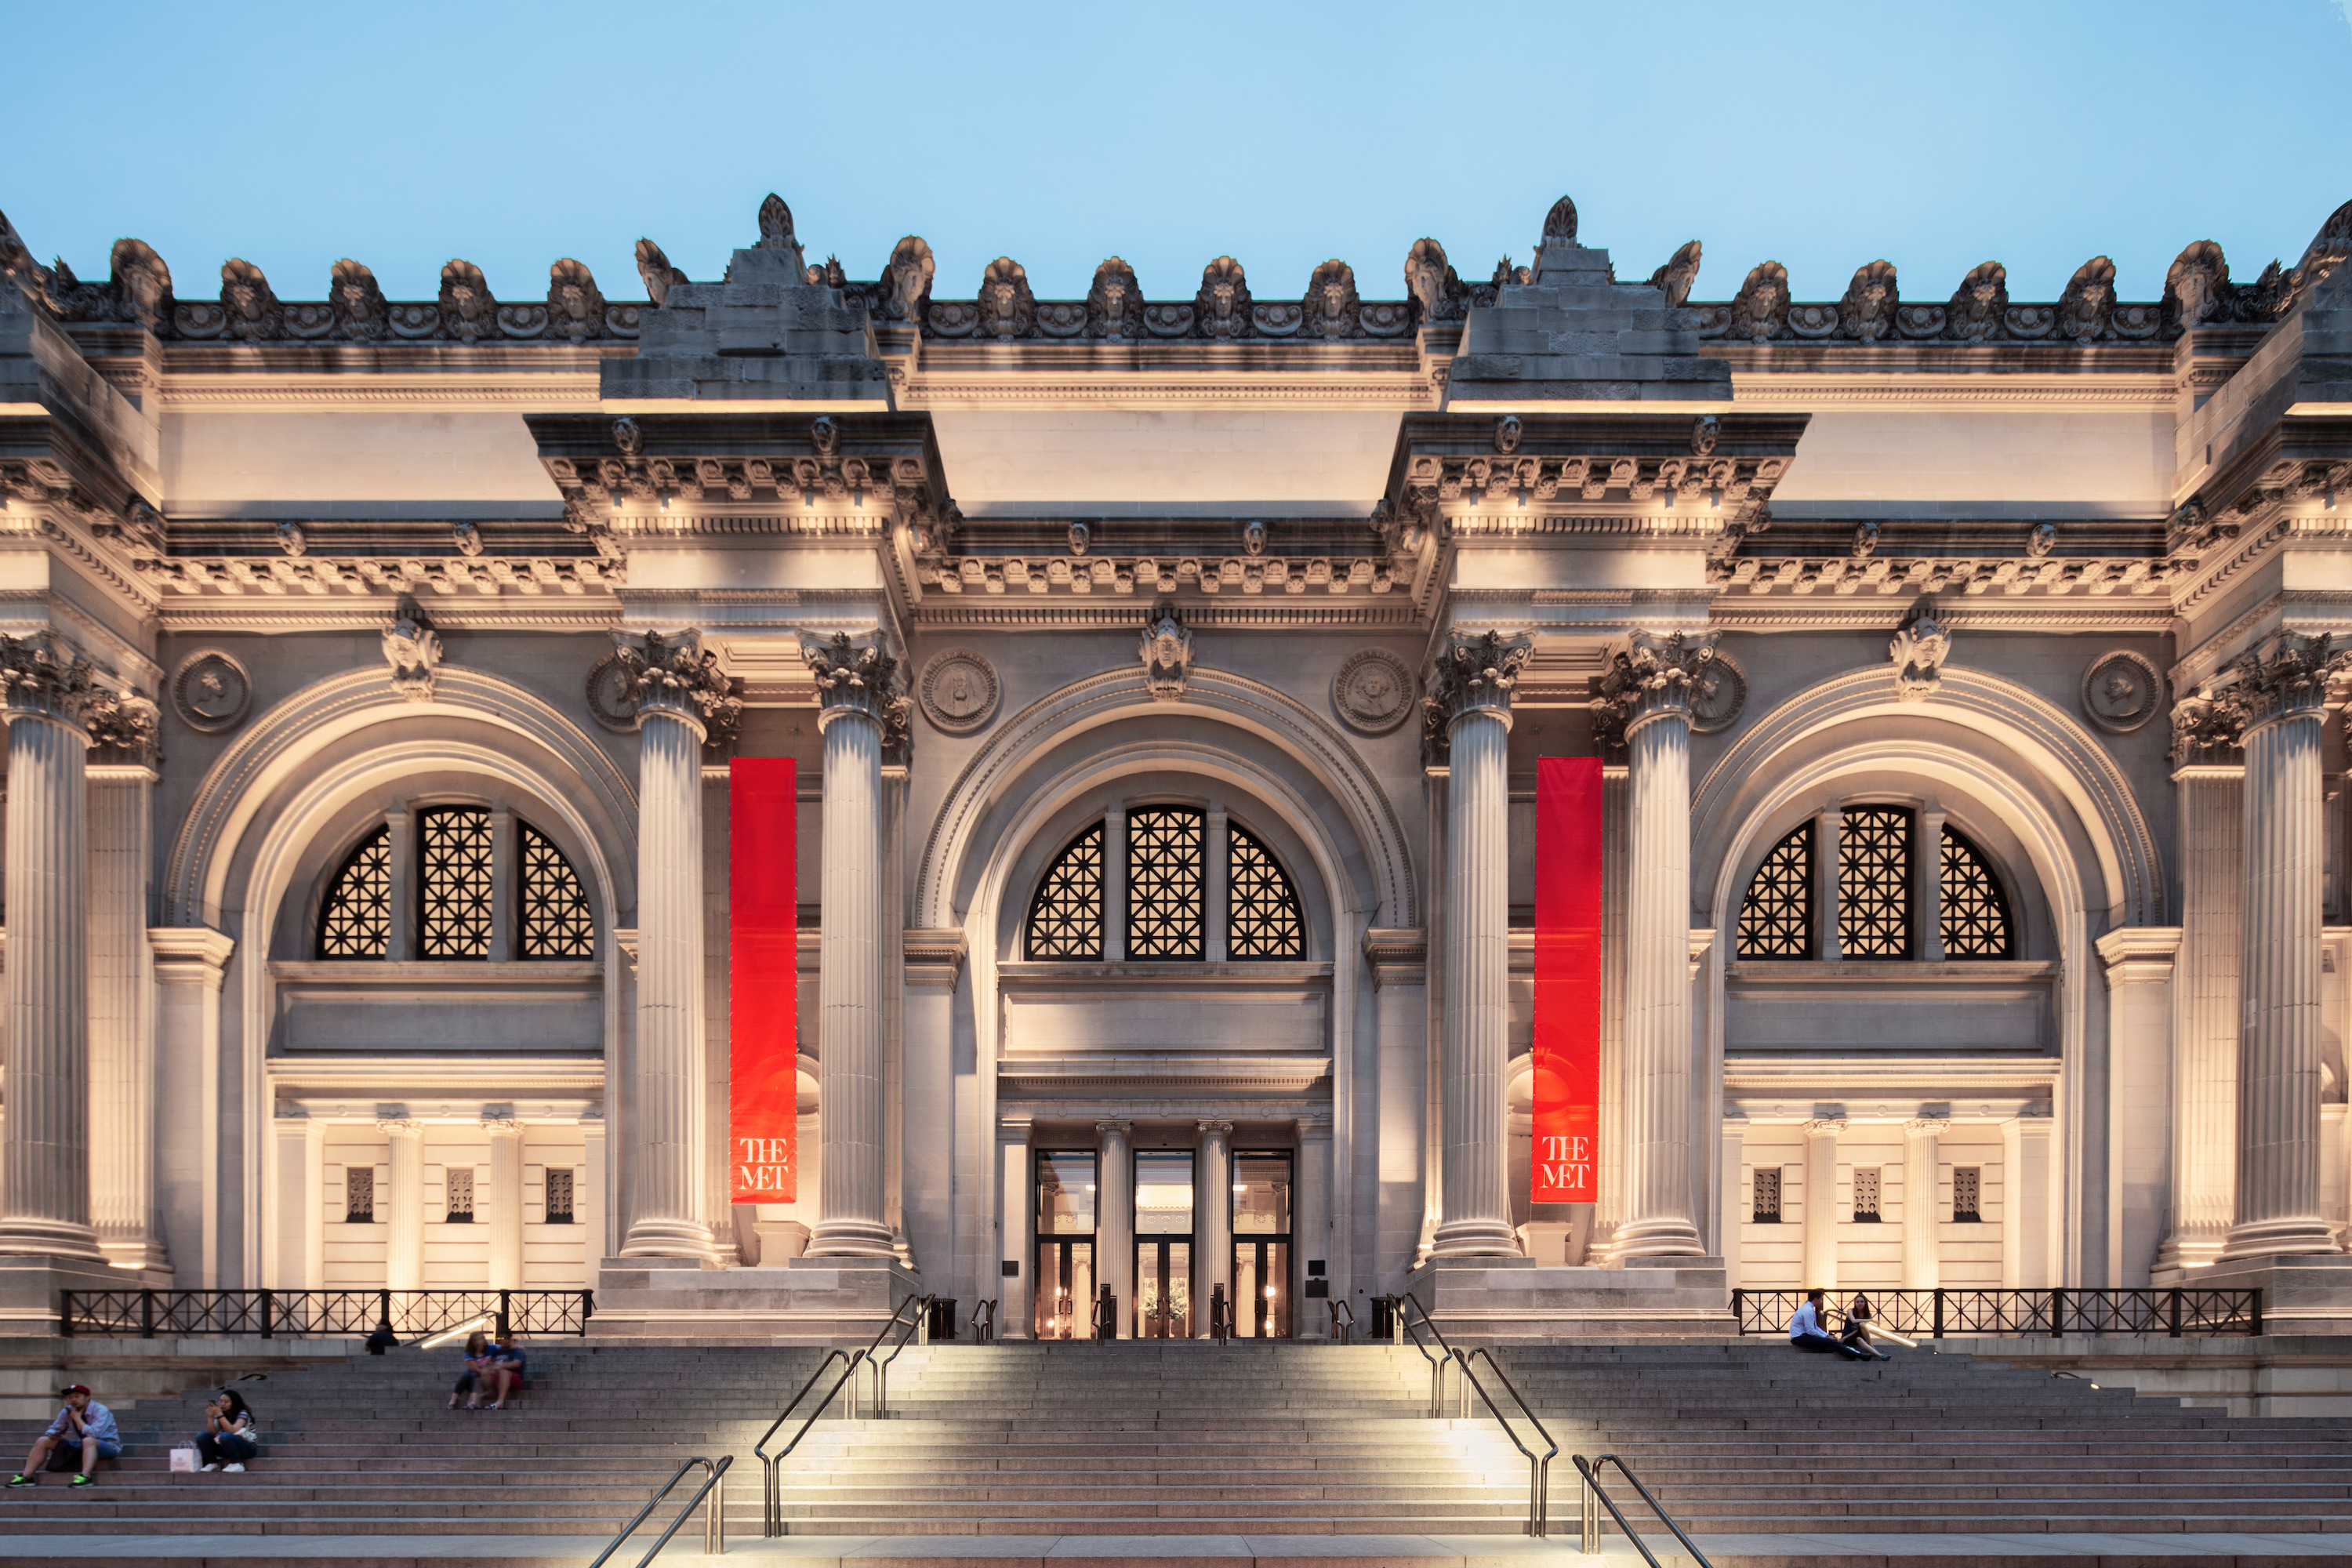 The Met reflects on last year and what lies ahead